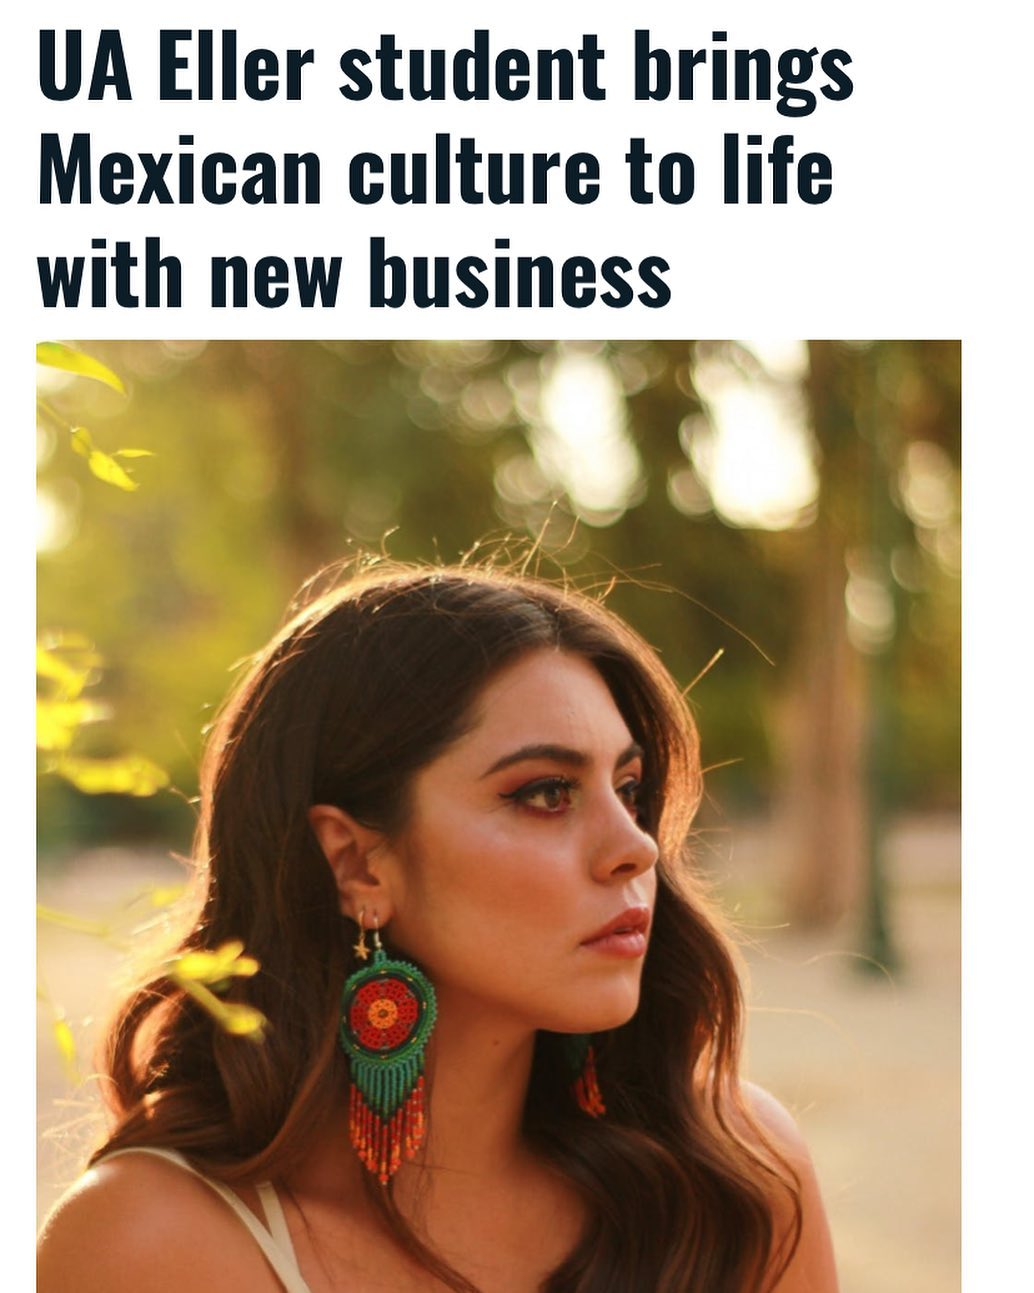 """""""Rodriguez's mission is to """"help, share, and empower her culture."""" Rodriguez said she sells things at a fair price, both for her customers and for the artists behind the products. She wants the artisans to get the recognition they deserve."""" #MEXtalksMonday . . LINK IN BIO"""